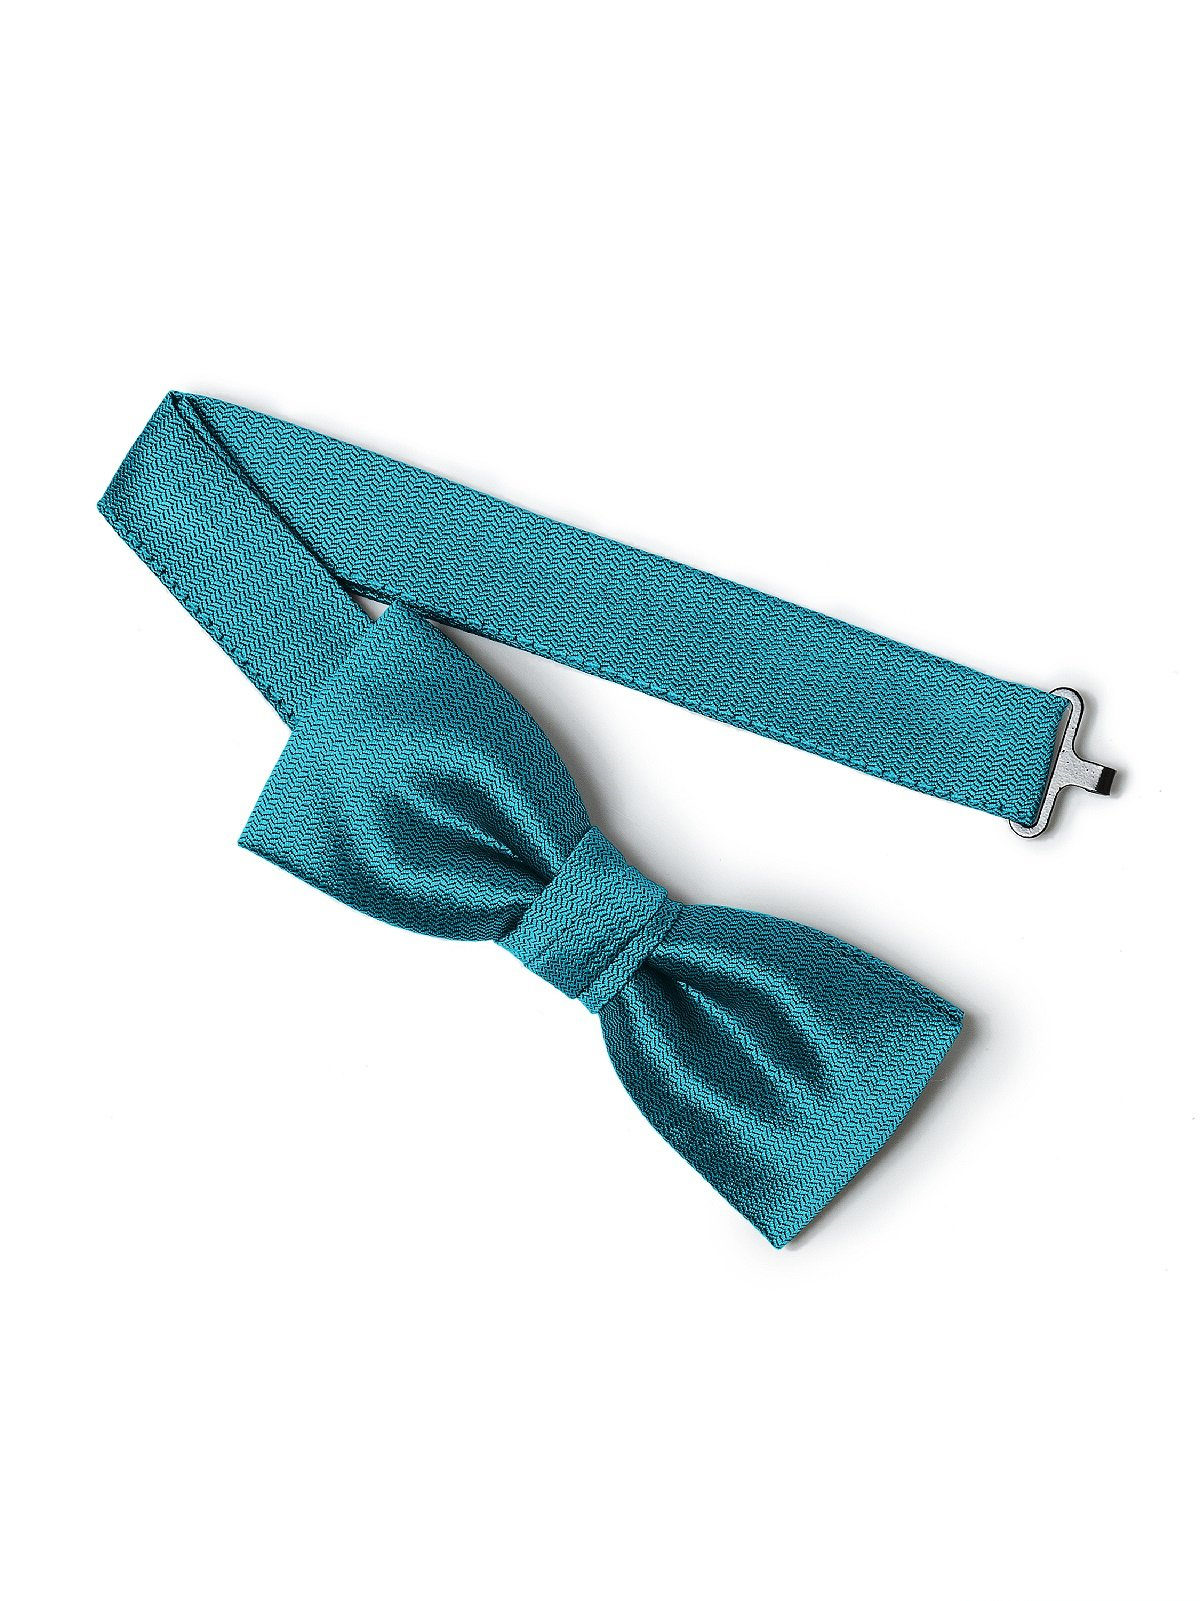 Boy's Paragon Jacquard Bowtie by After Six from Dessy - Oasis